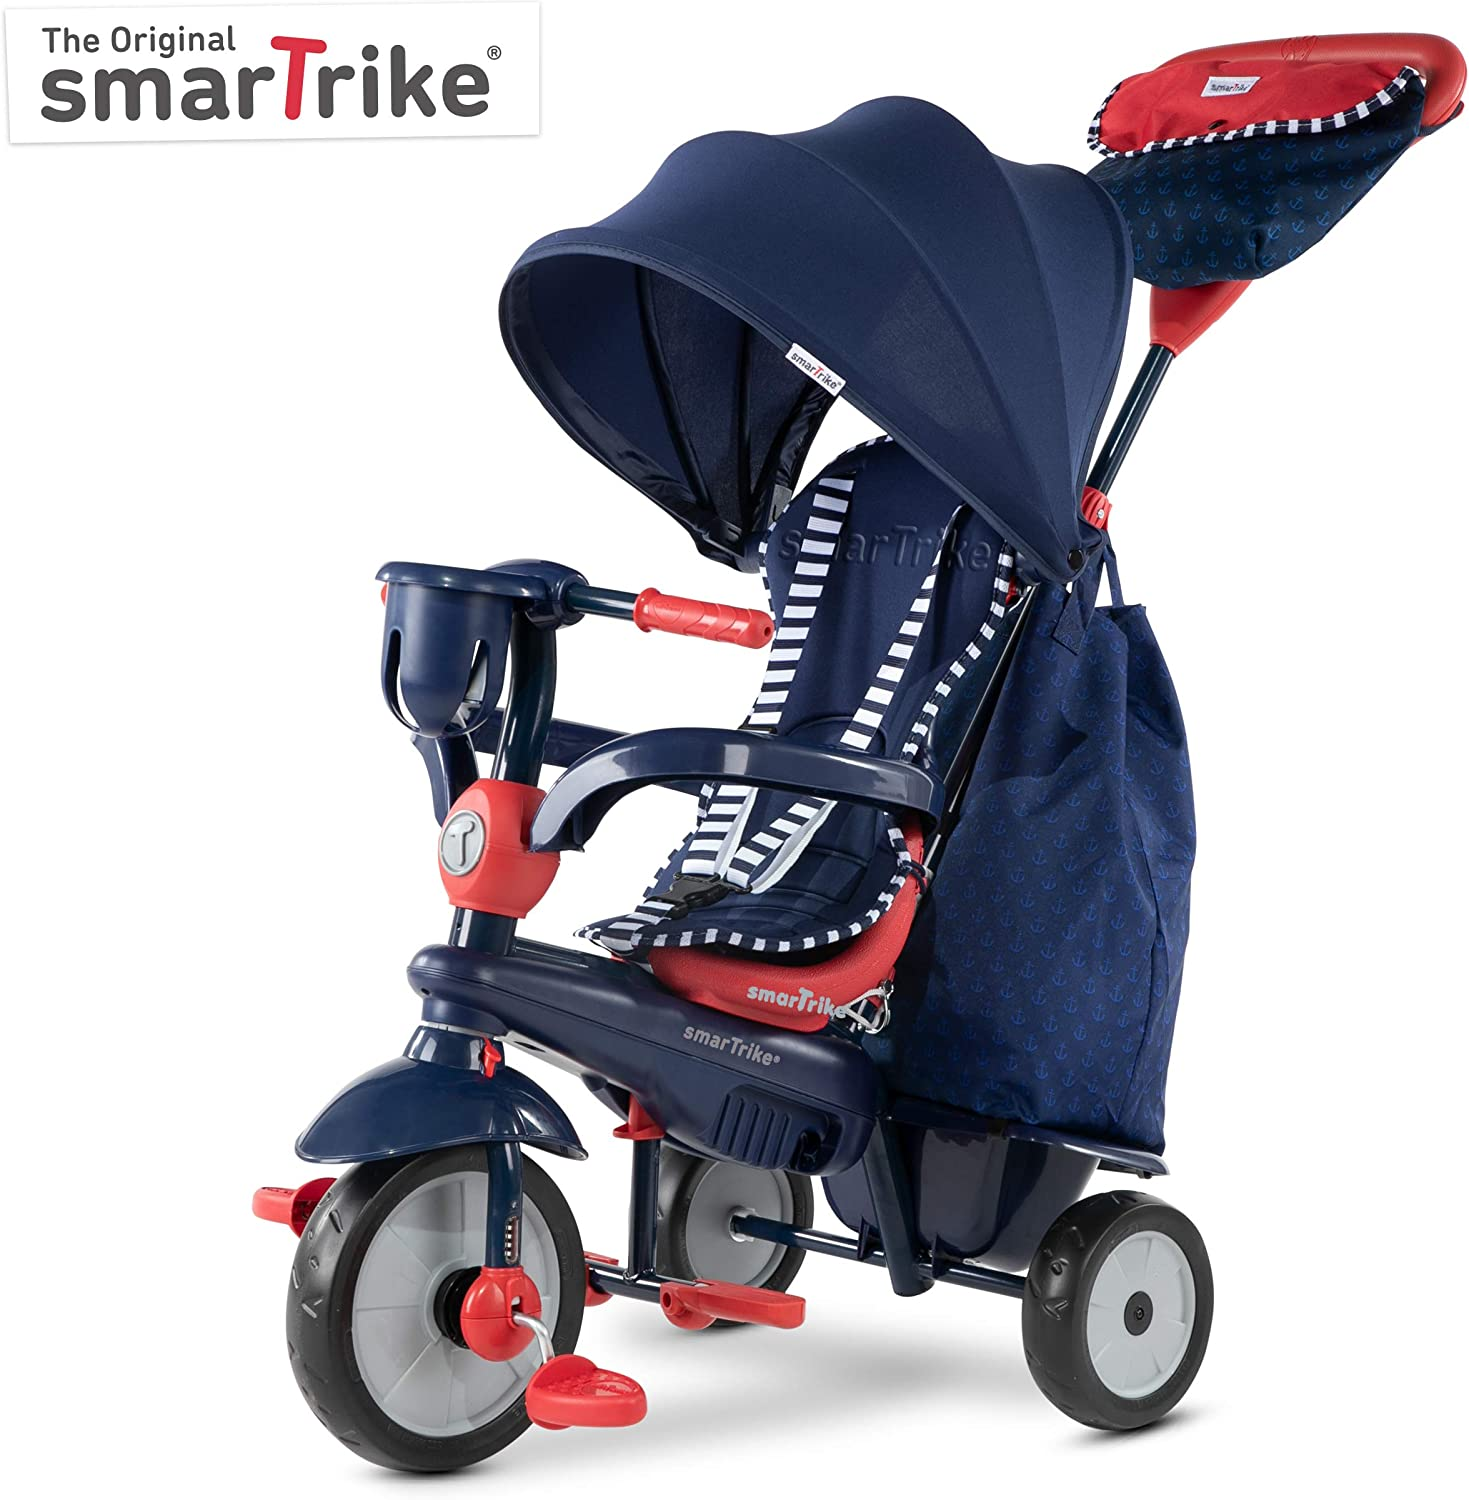 smarTrike Swirl Toddler Tricycle for 1,2,3 Year Olds - 4 in 1 Multi-Stage Trike, Navy